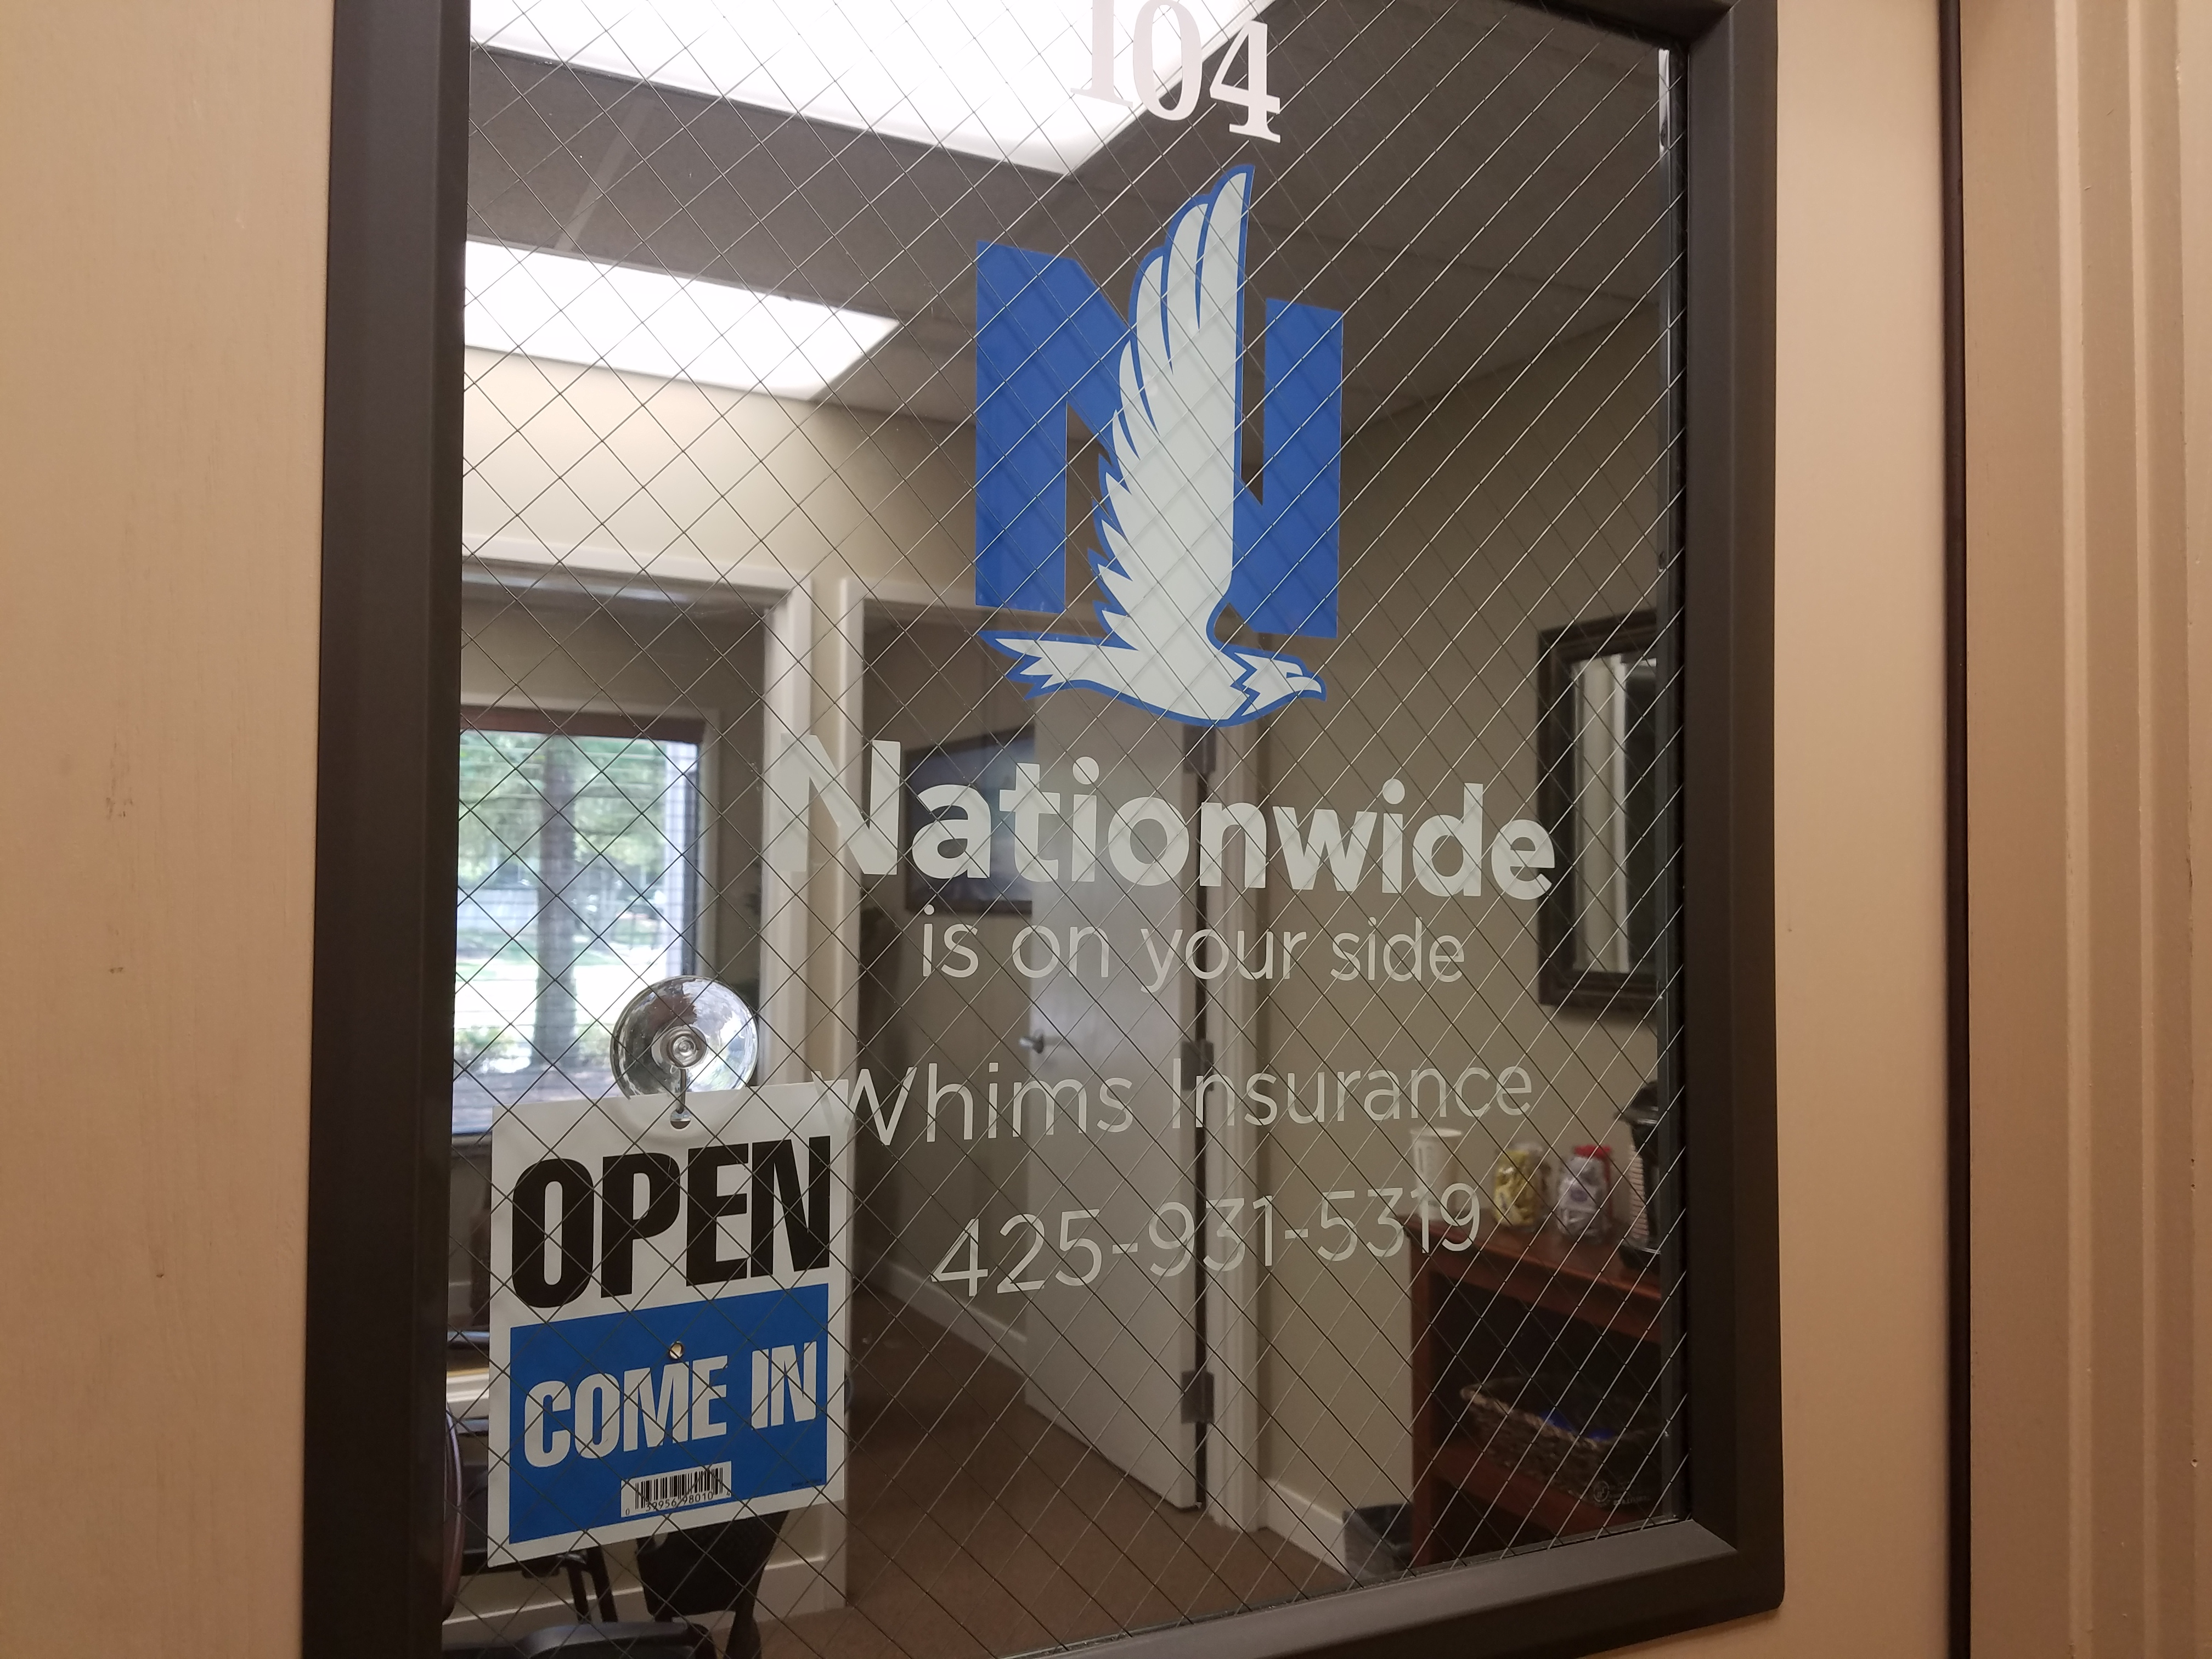 Nationwide Insurance: Whims Insurance and Financial Services Inc.   375 118th Ave SE Unit 104, Bellevue, WA, 98005   +1 (425) 931-5319